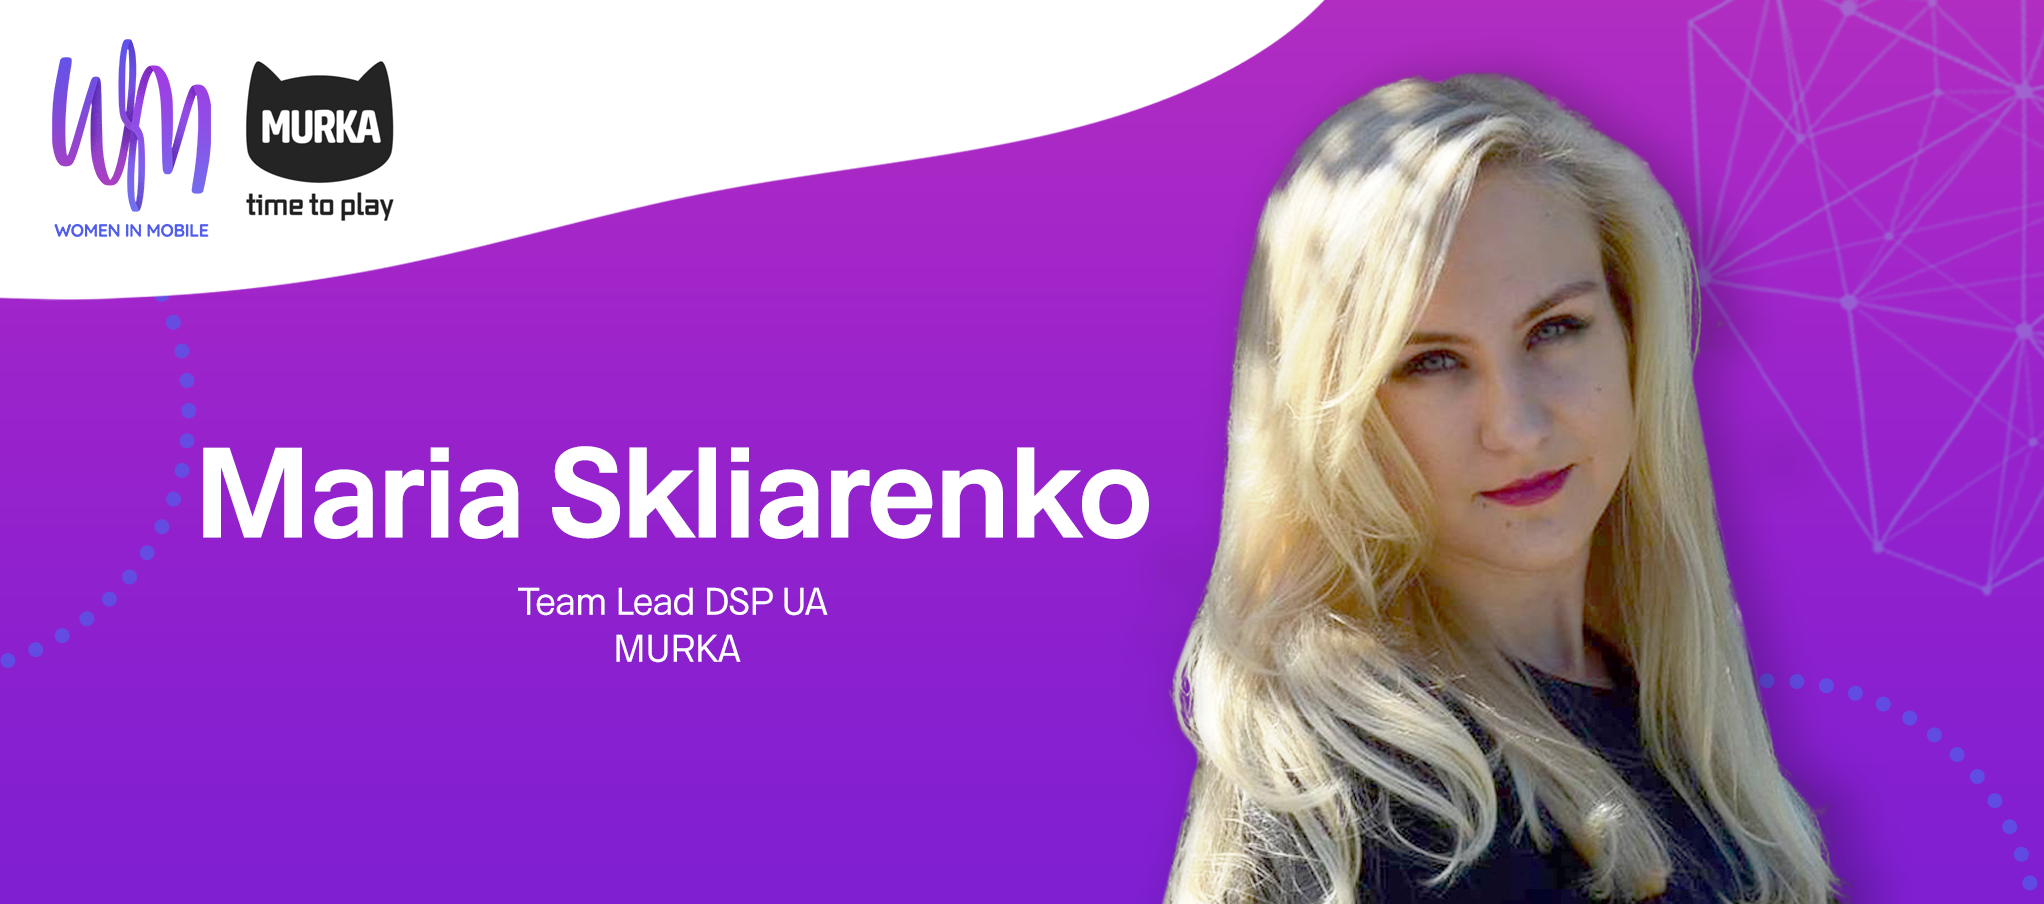 Maria Skliarenko, Team Lead DSP UA at MURKA at Aarki's Women in Mobile series